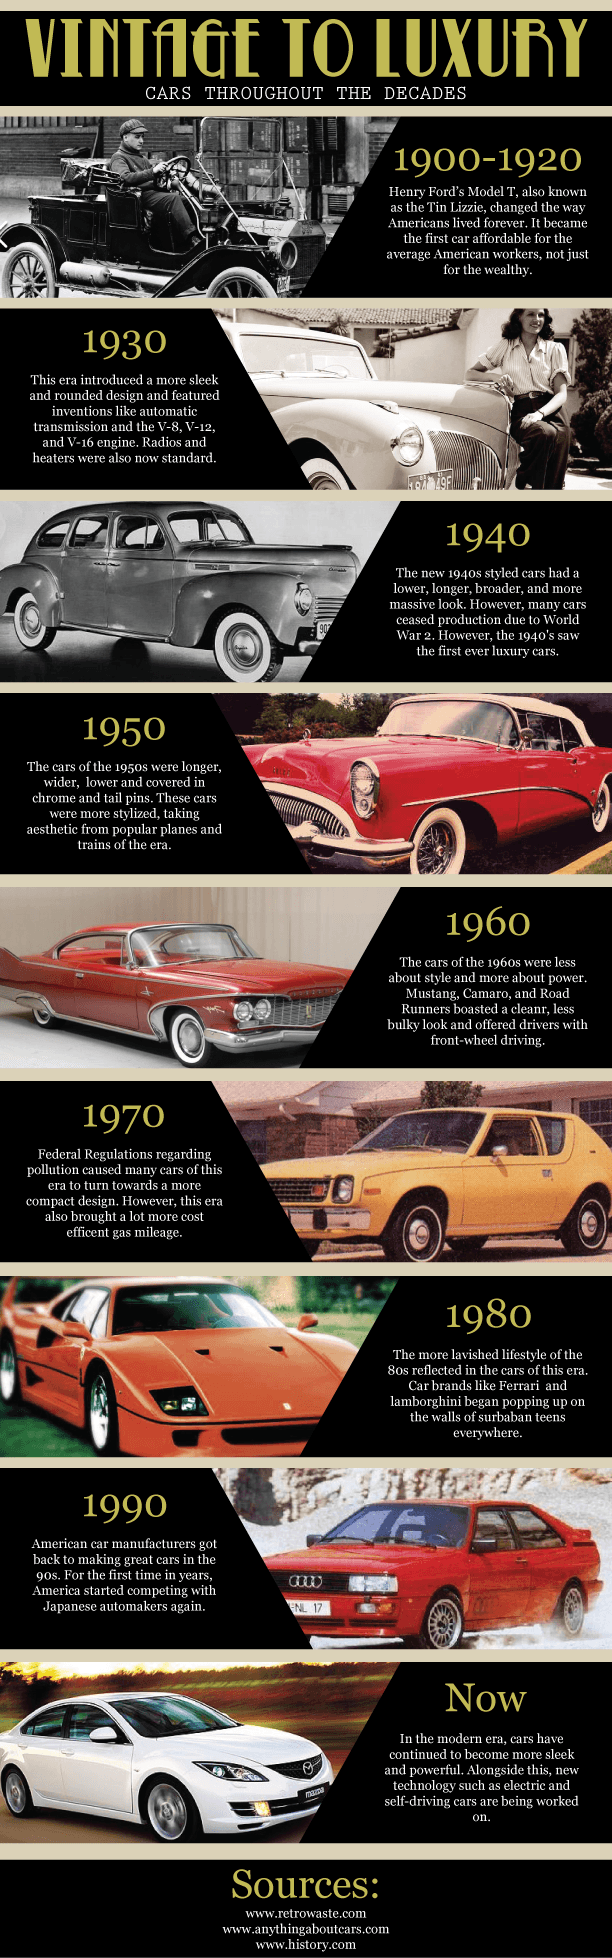 Vintage To Luxury Cars Throughout The Decades Motor